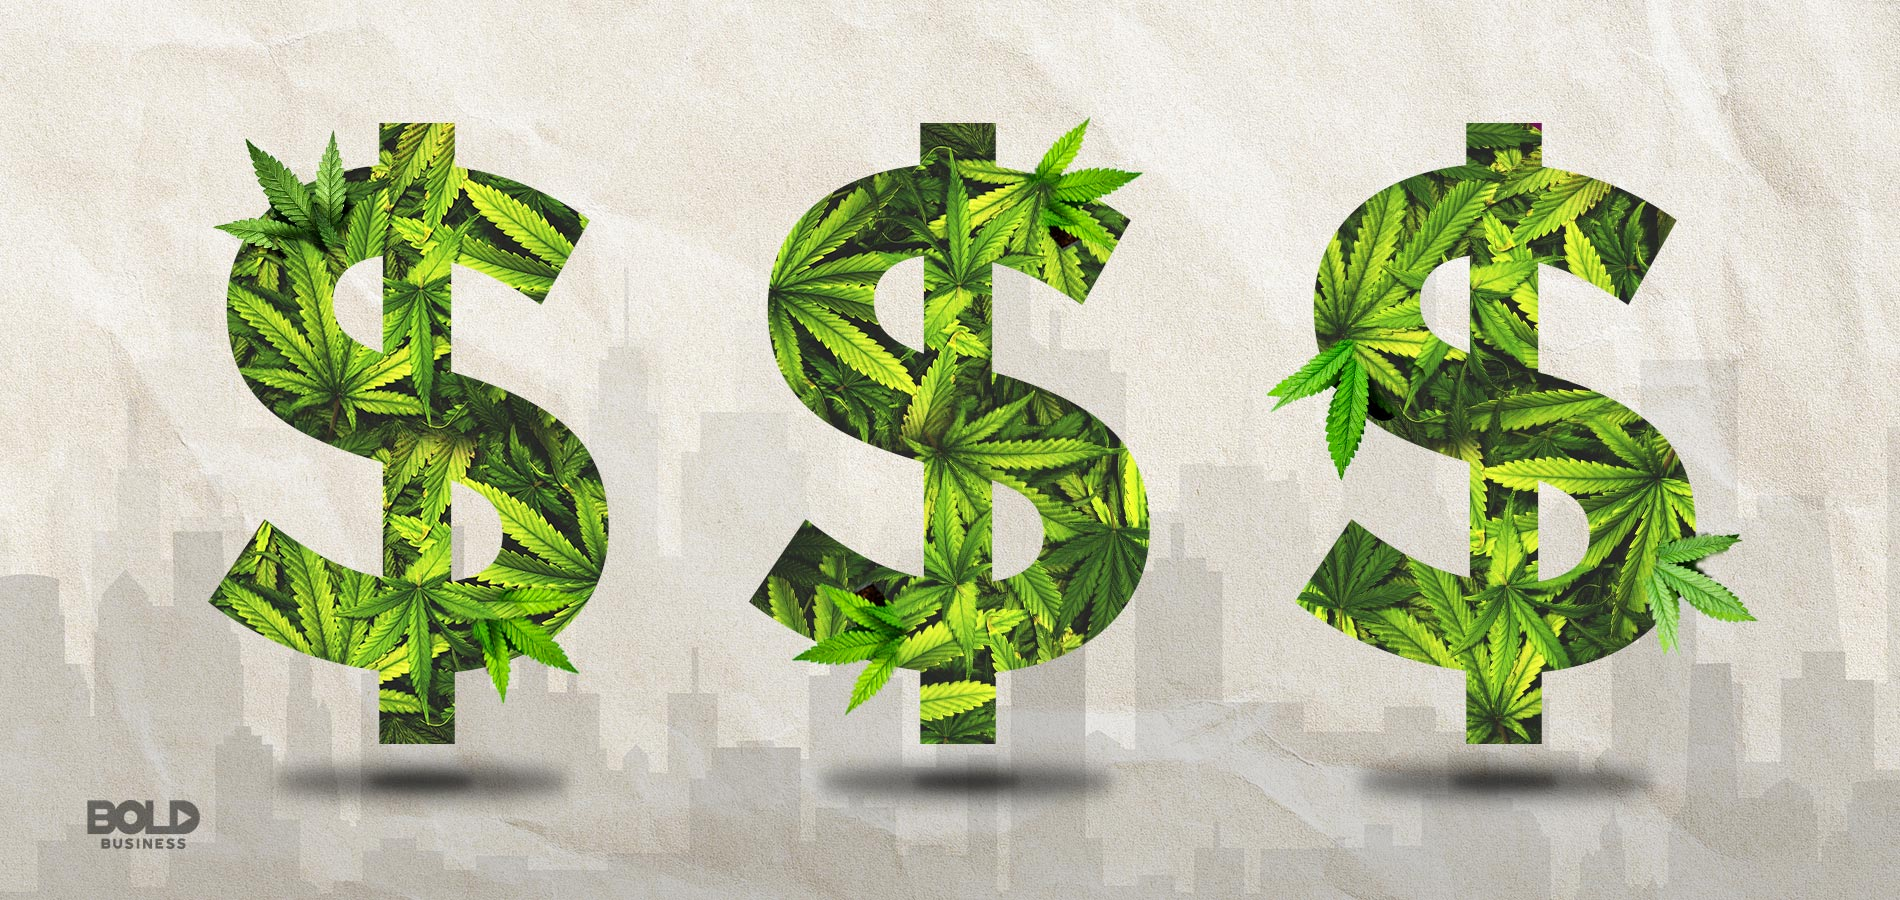 There's money to be made in cannabis